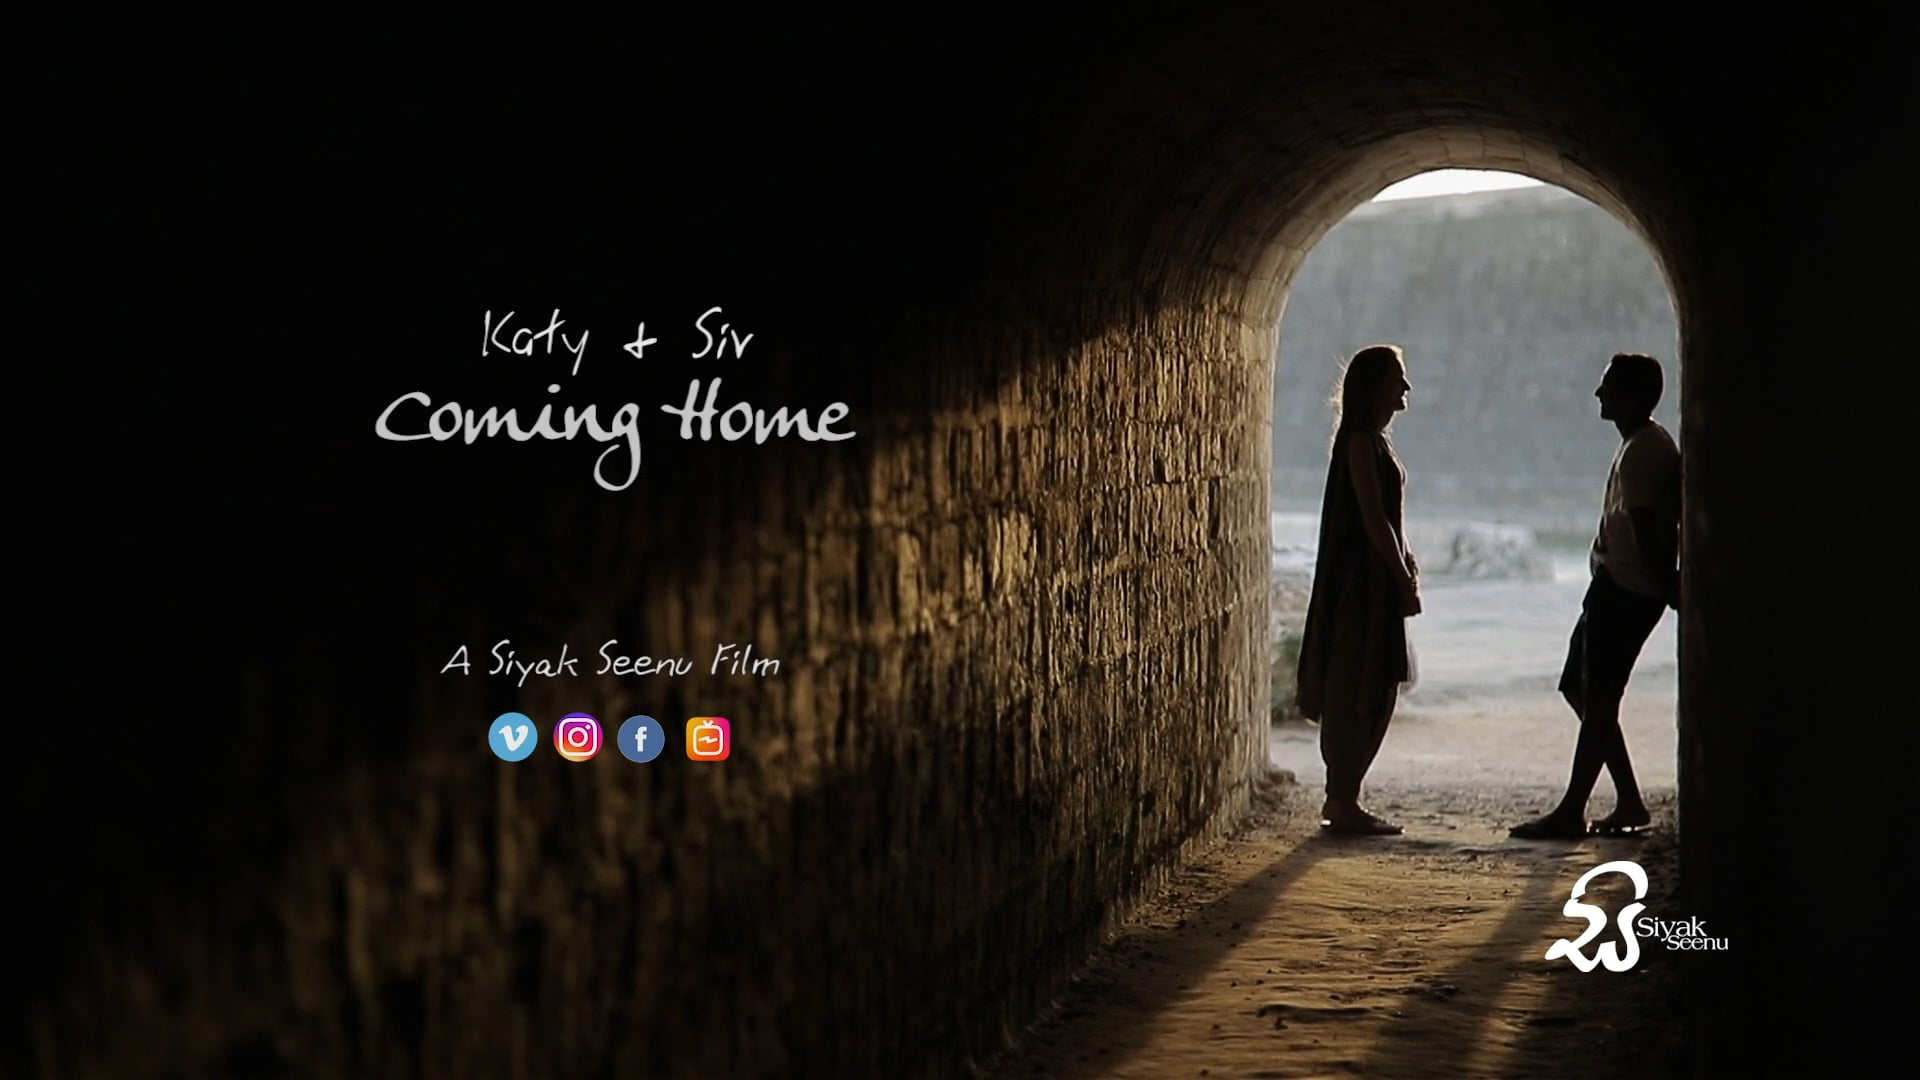 Trailer: Coming Home